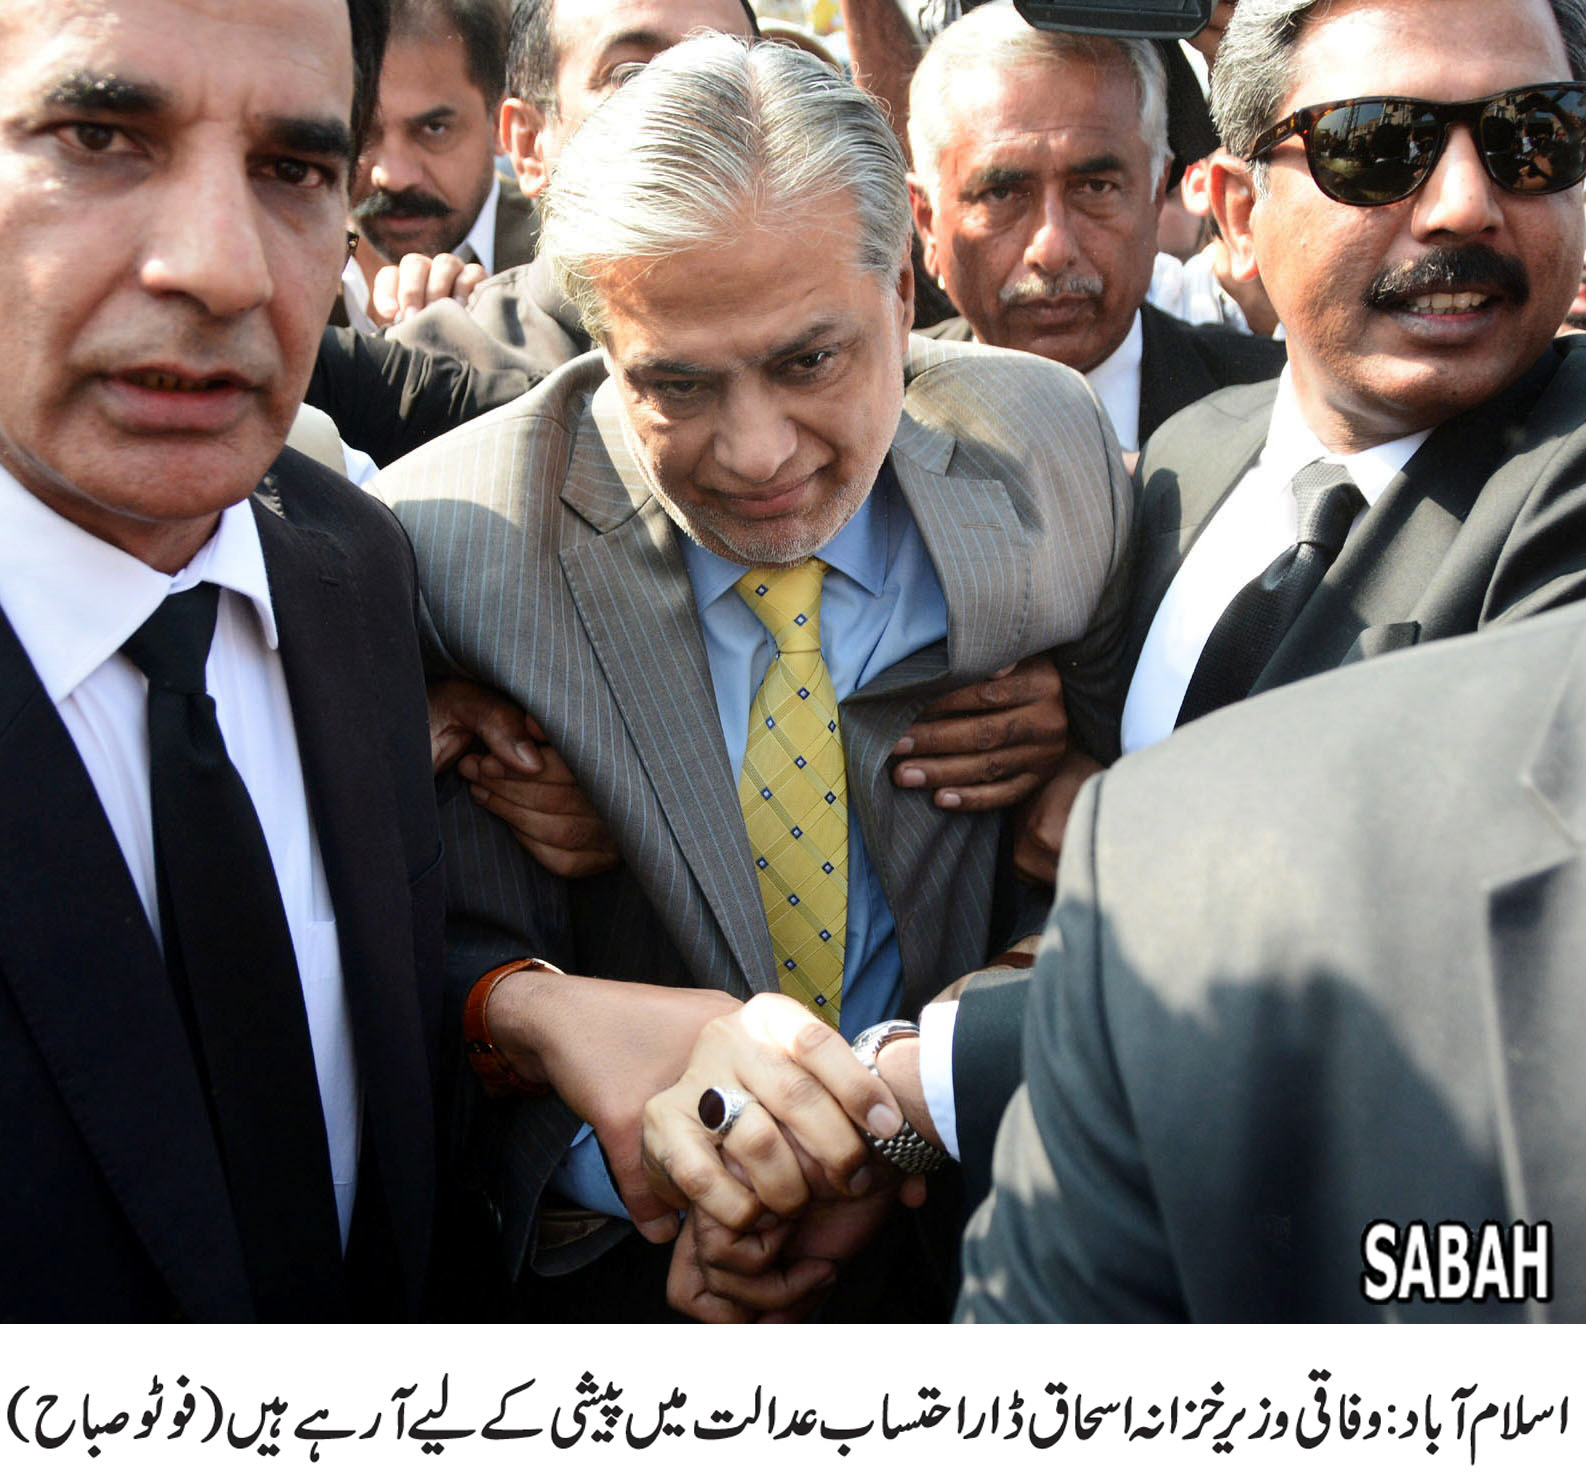 Dar appearing before accountability court on Sep 27 PHOTO: SABAH